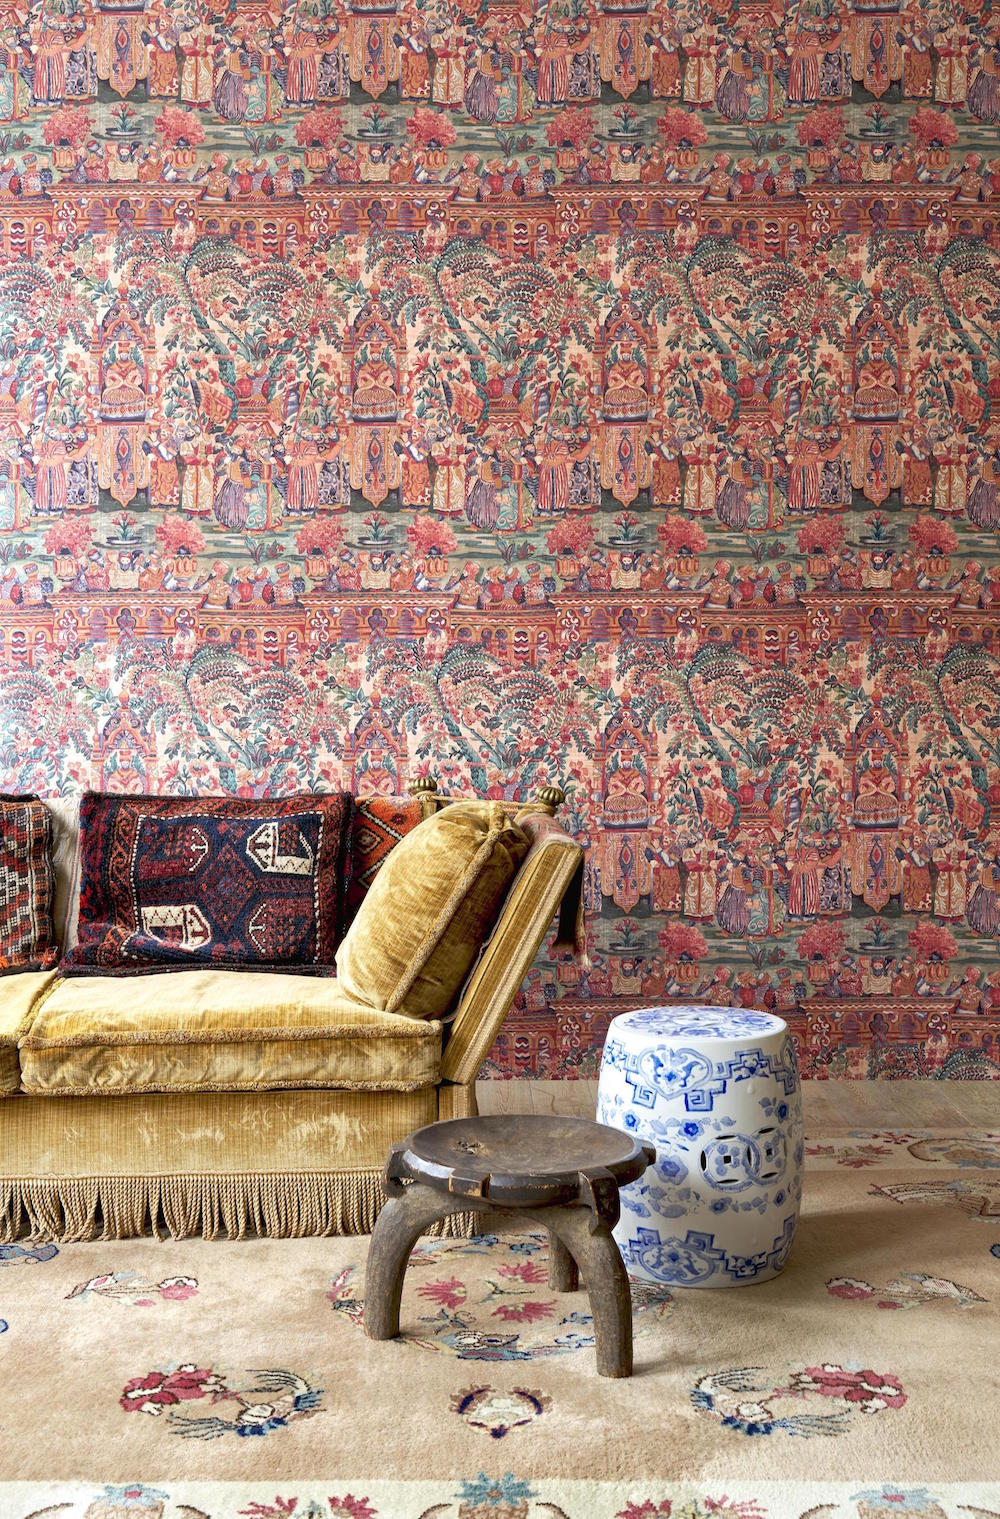 An intricate, maximalist wallcovering